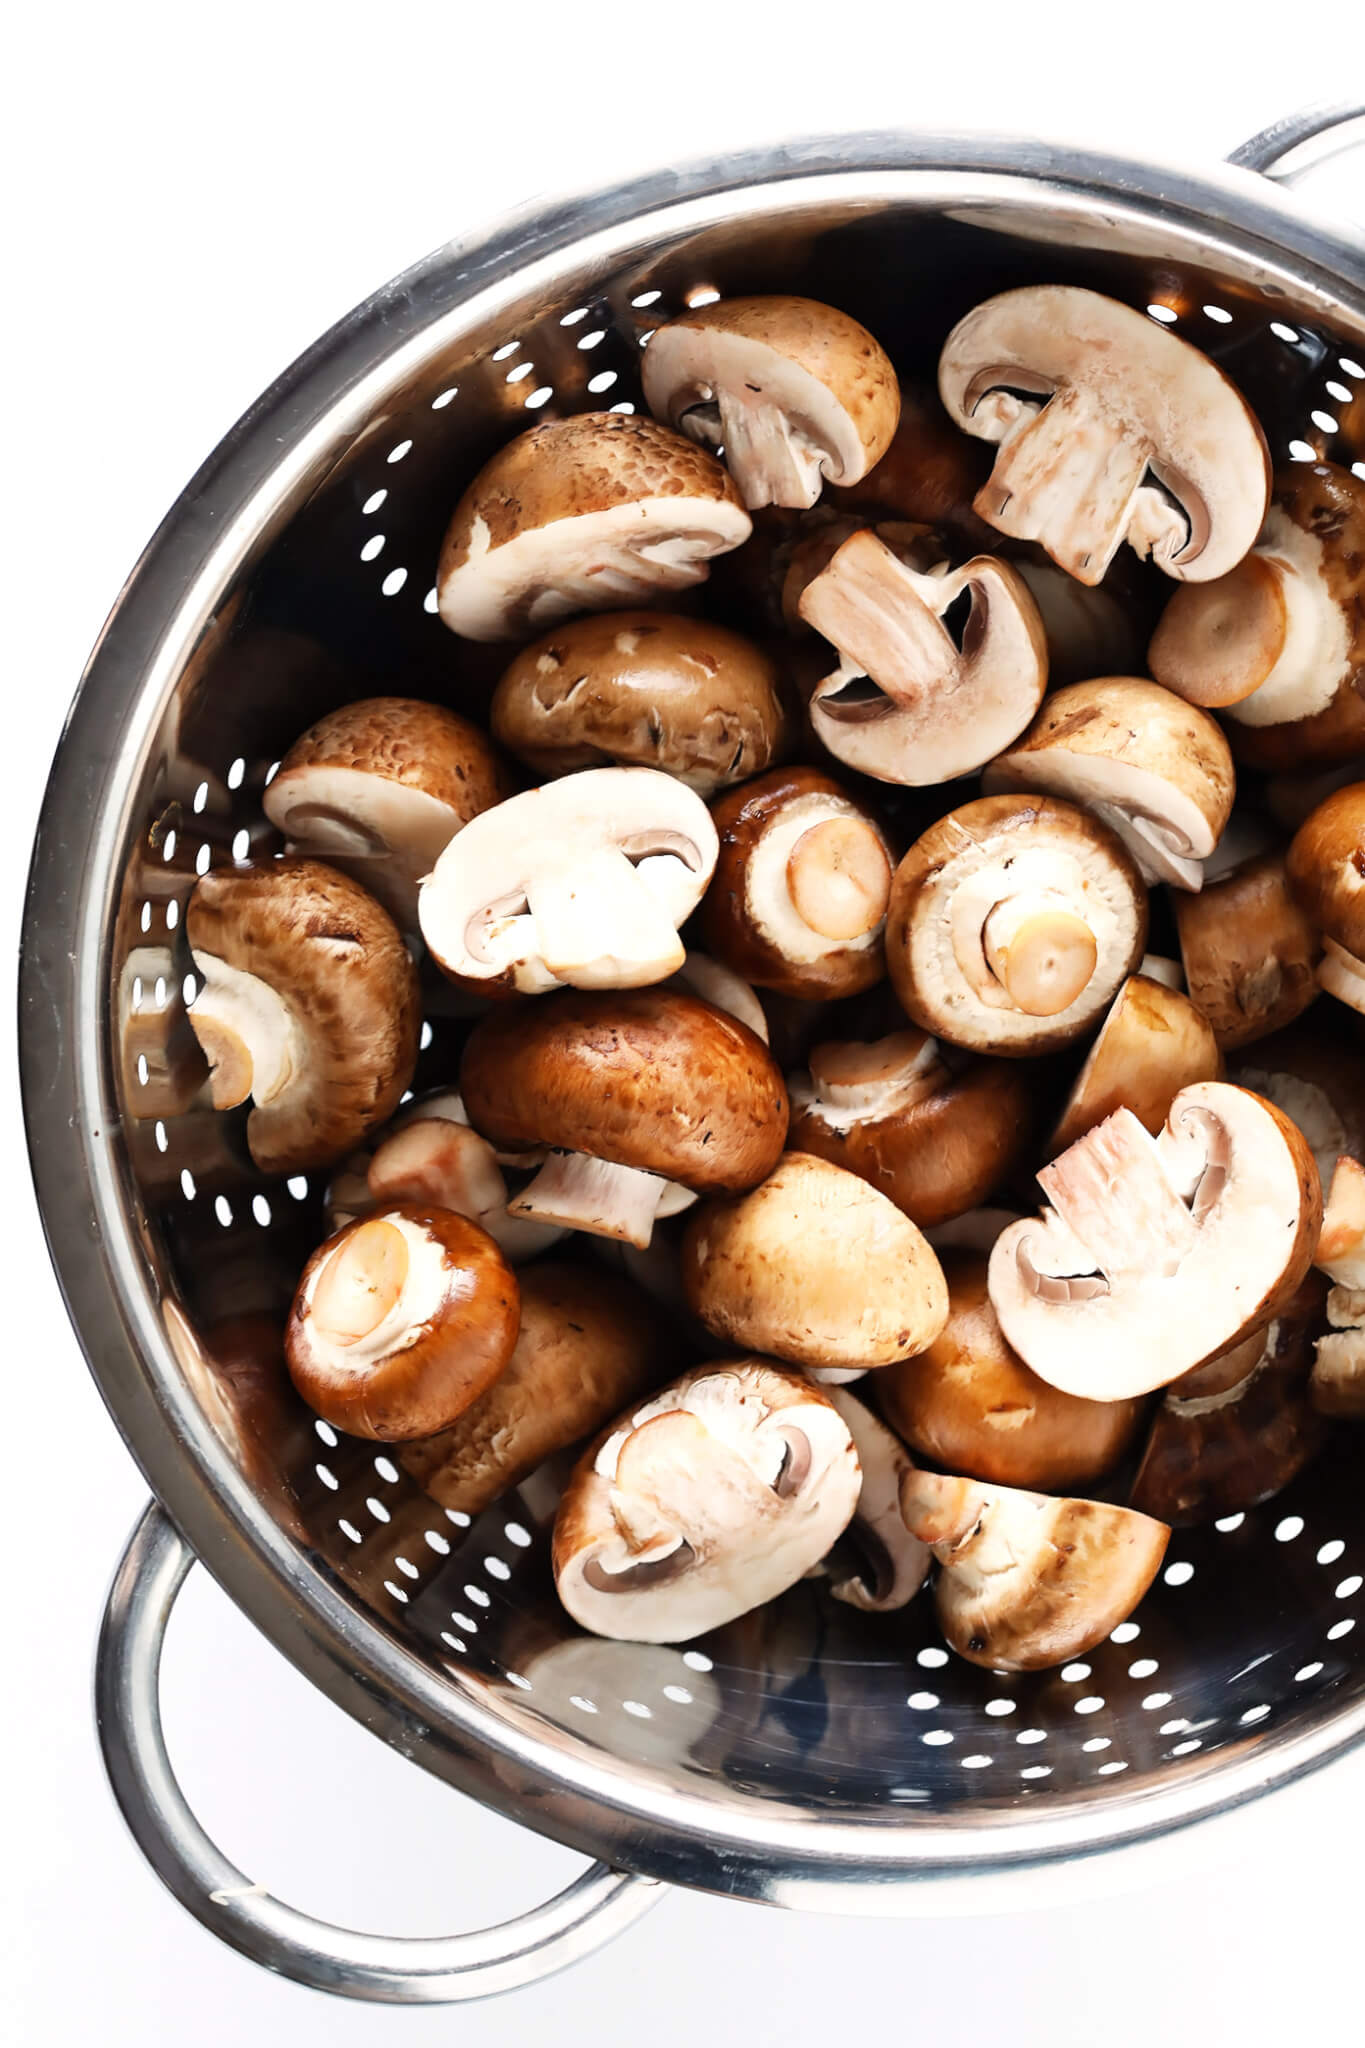 Mushrooms for this Vegetarian Portobello Pot Roast Recipe